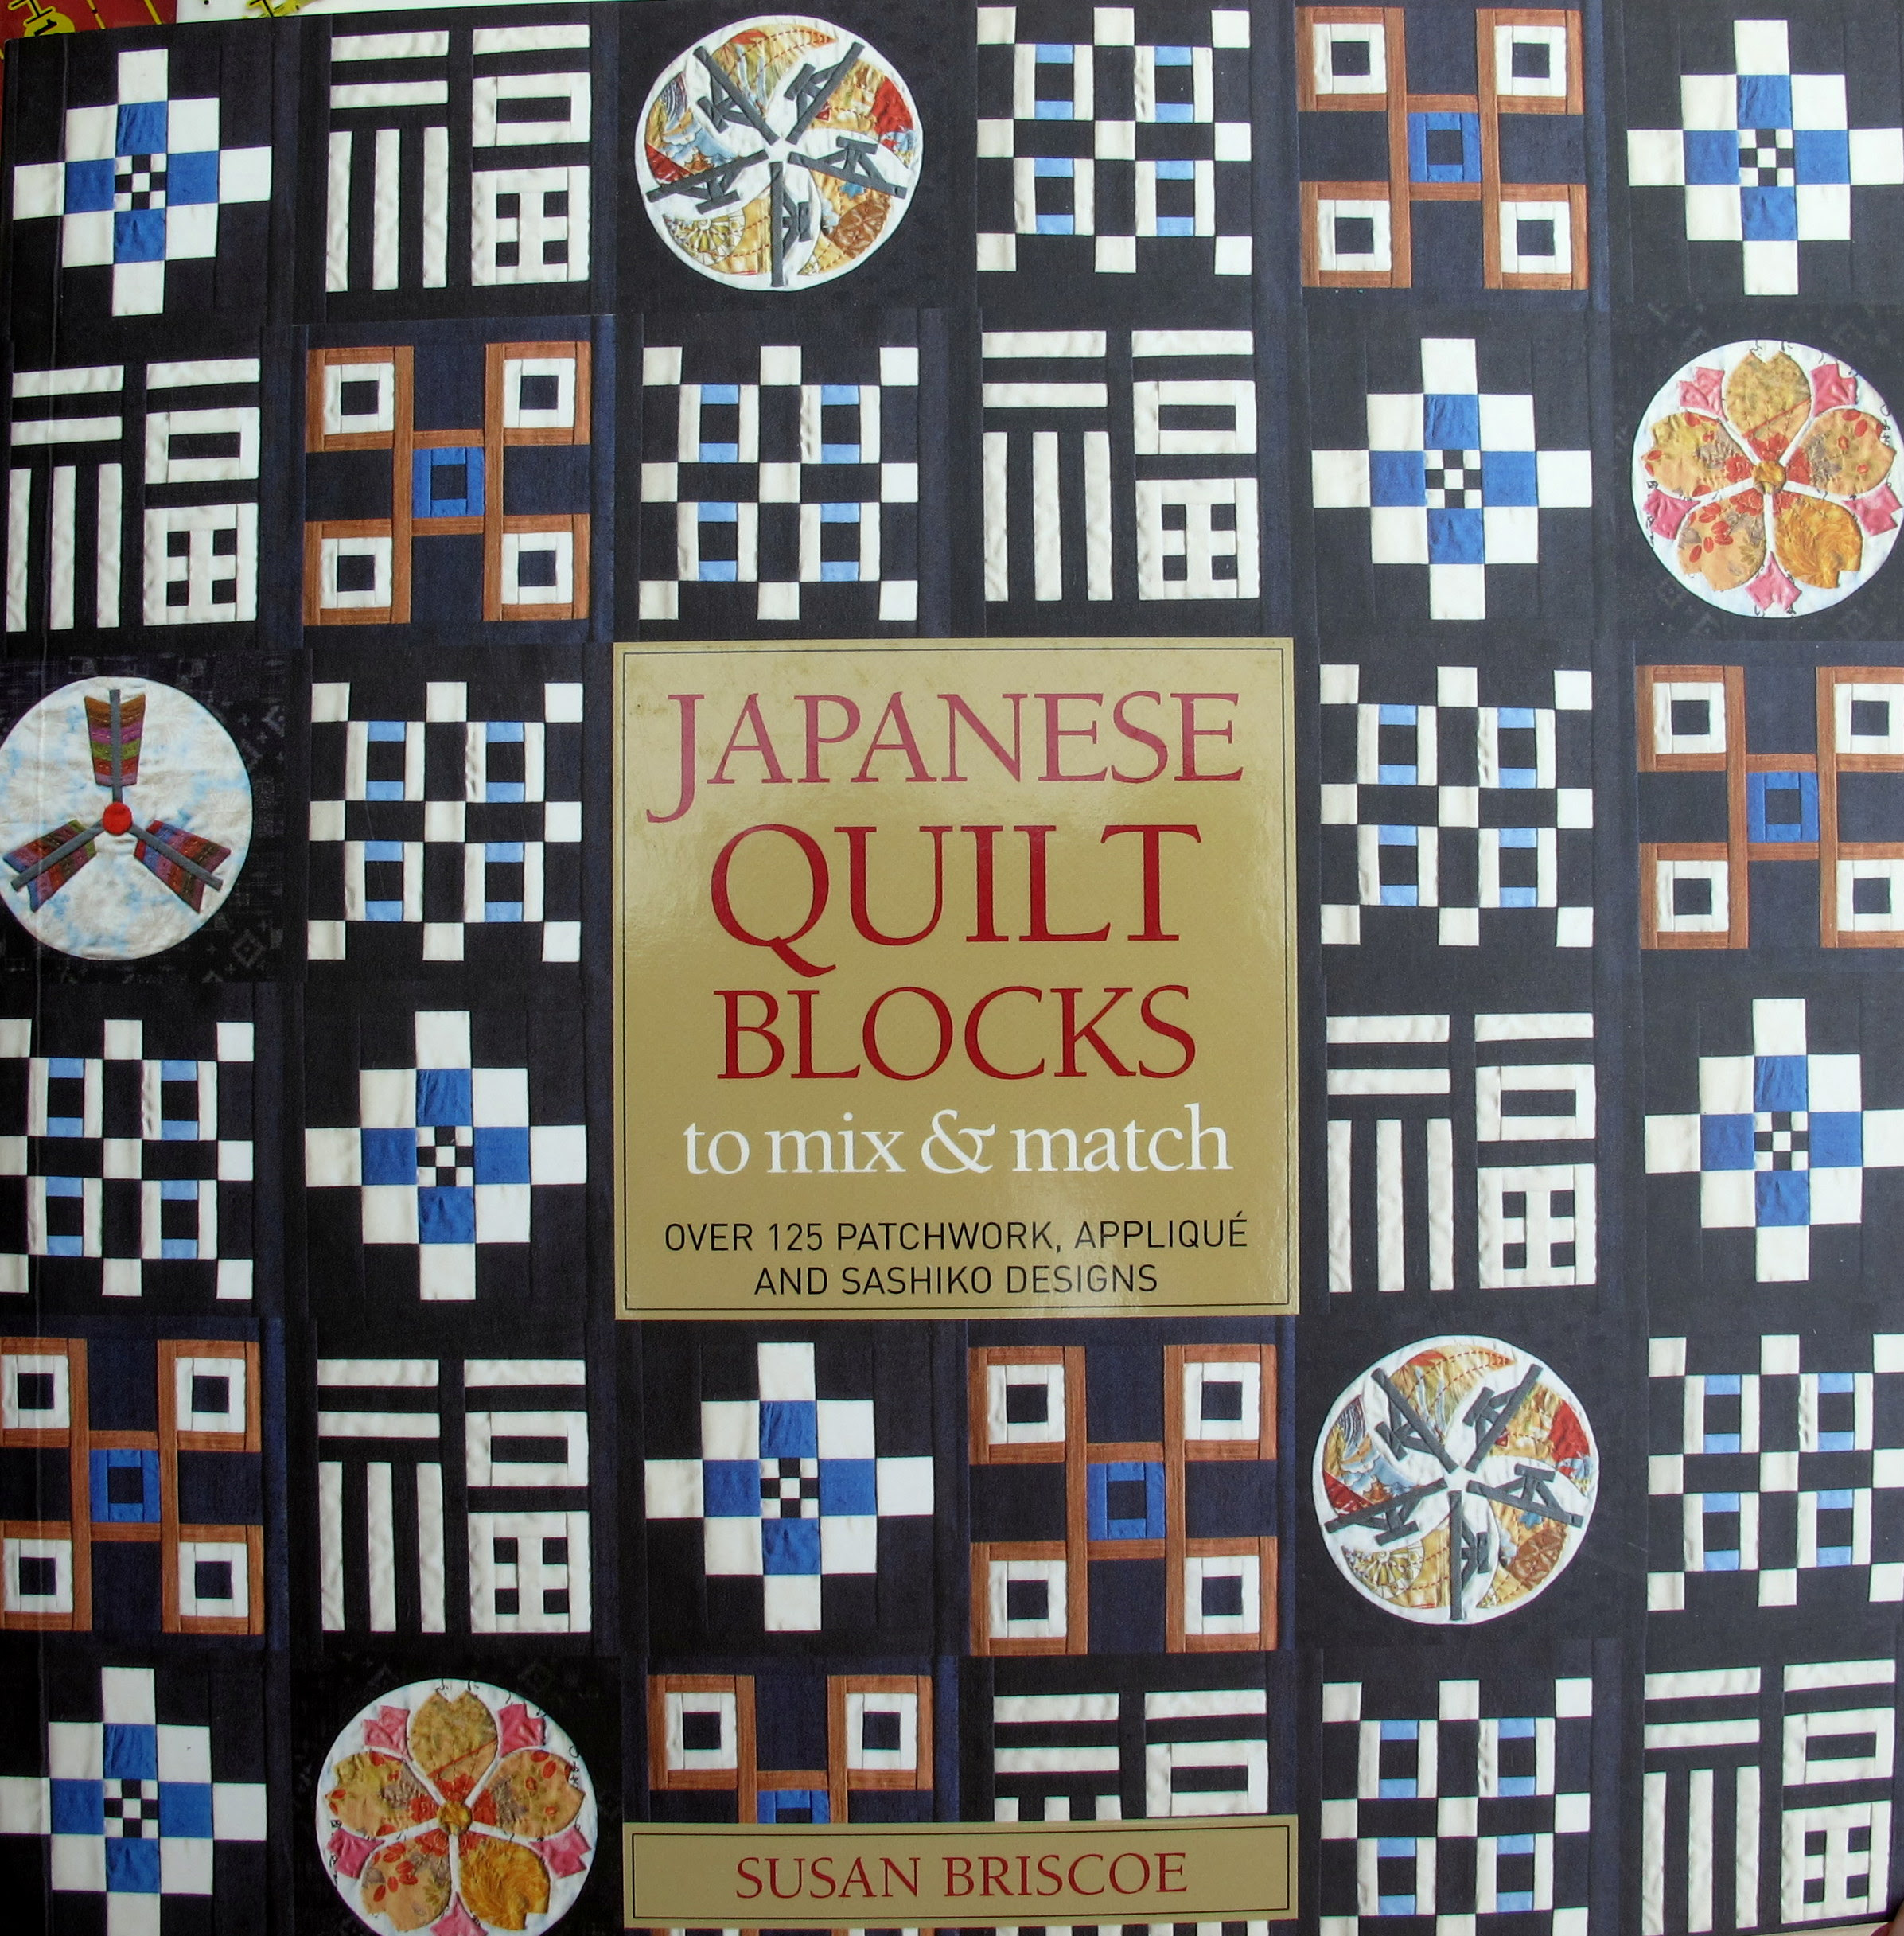 Japanes quilt blocks book